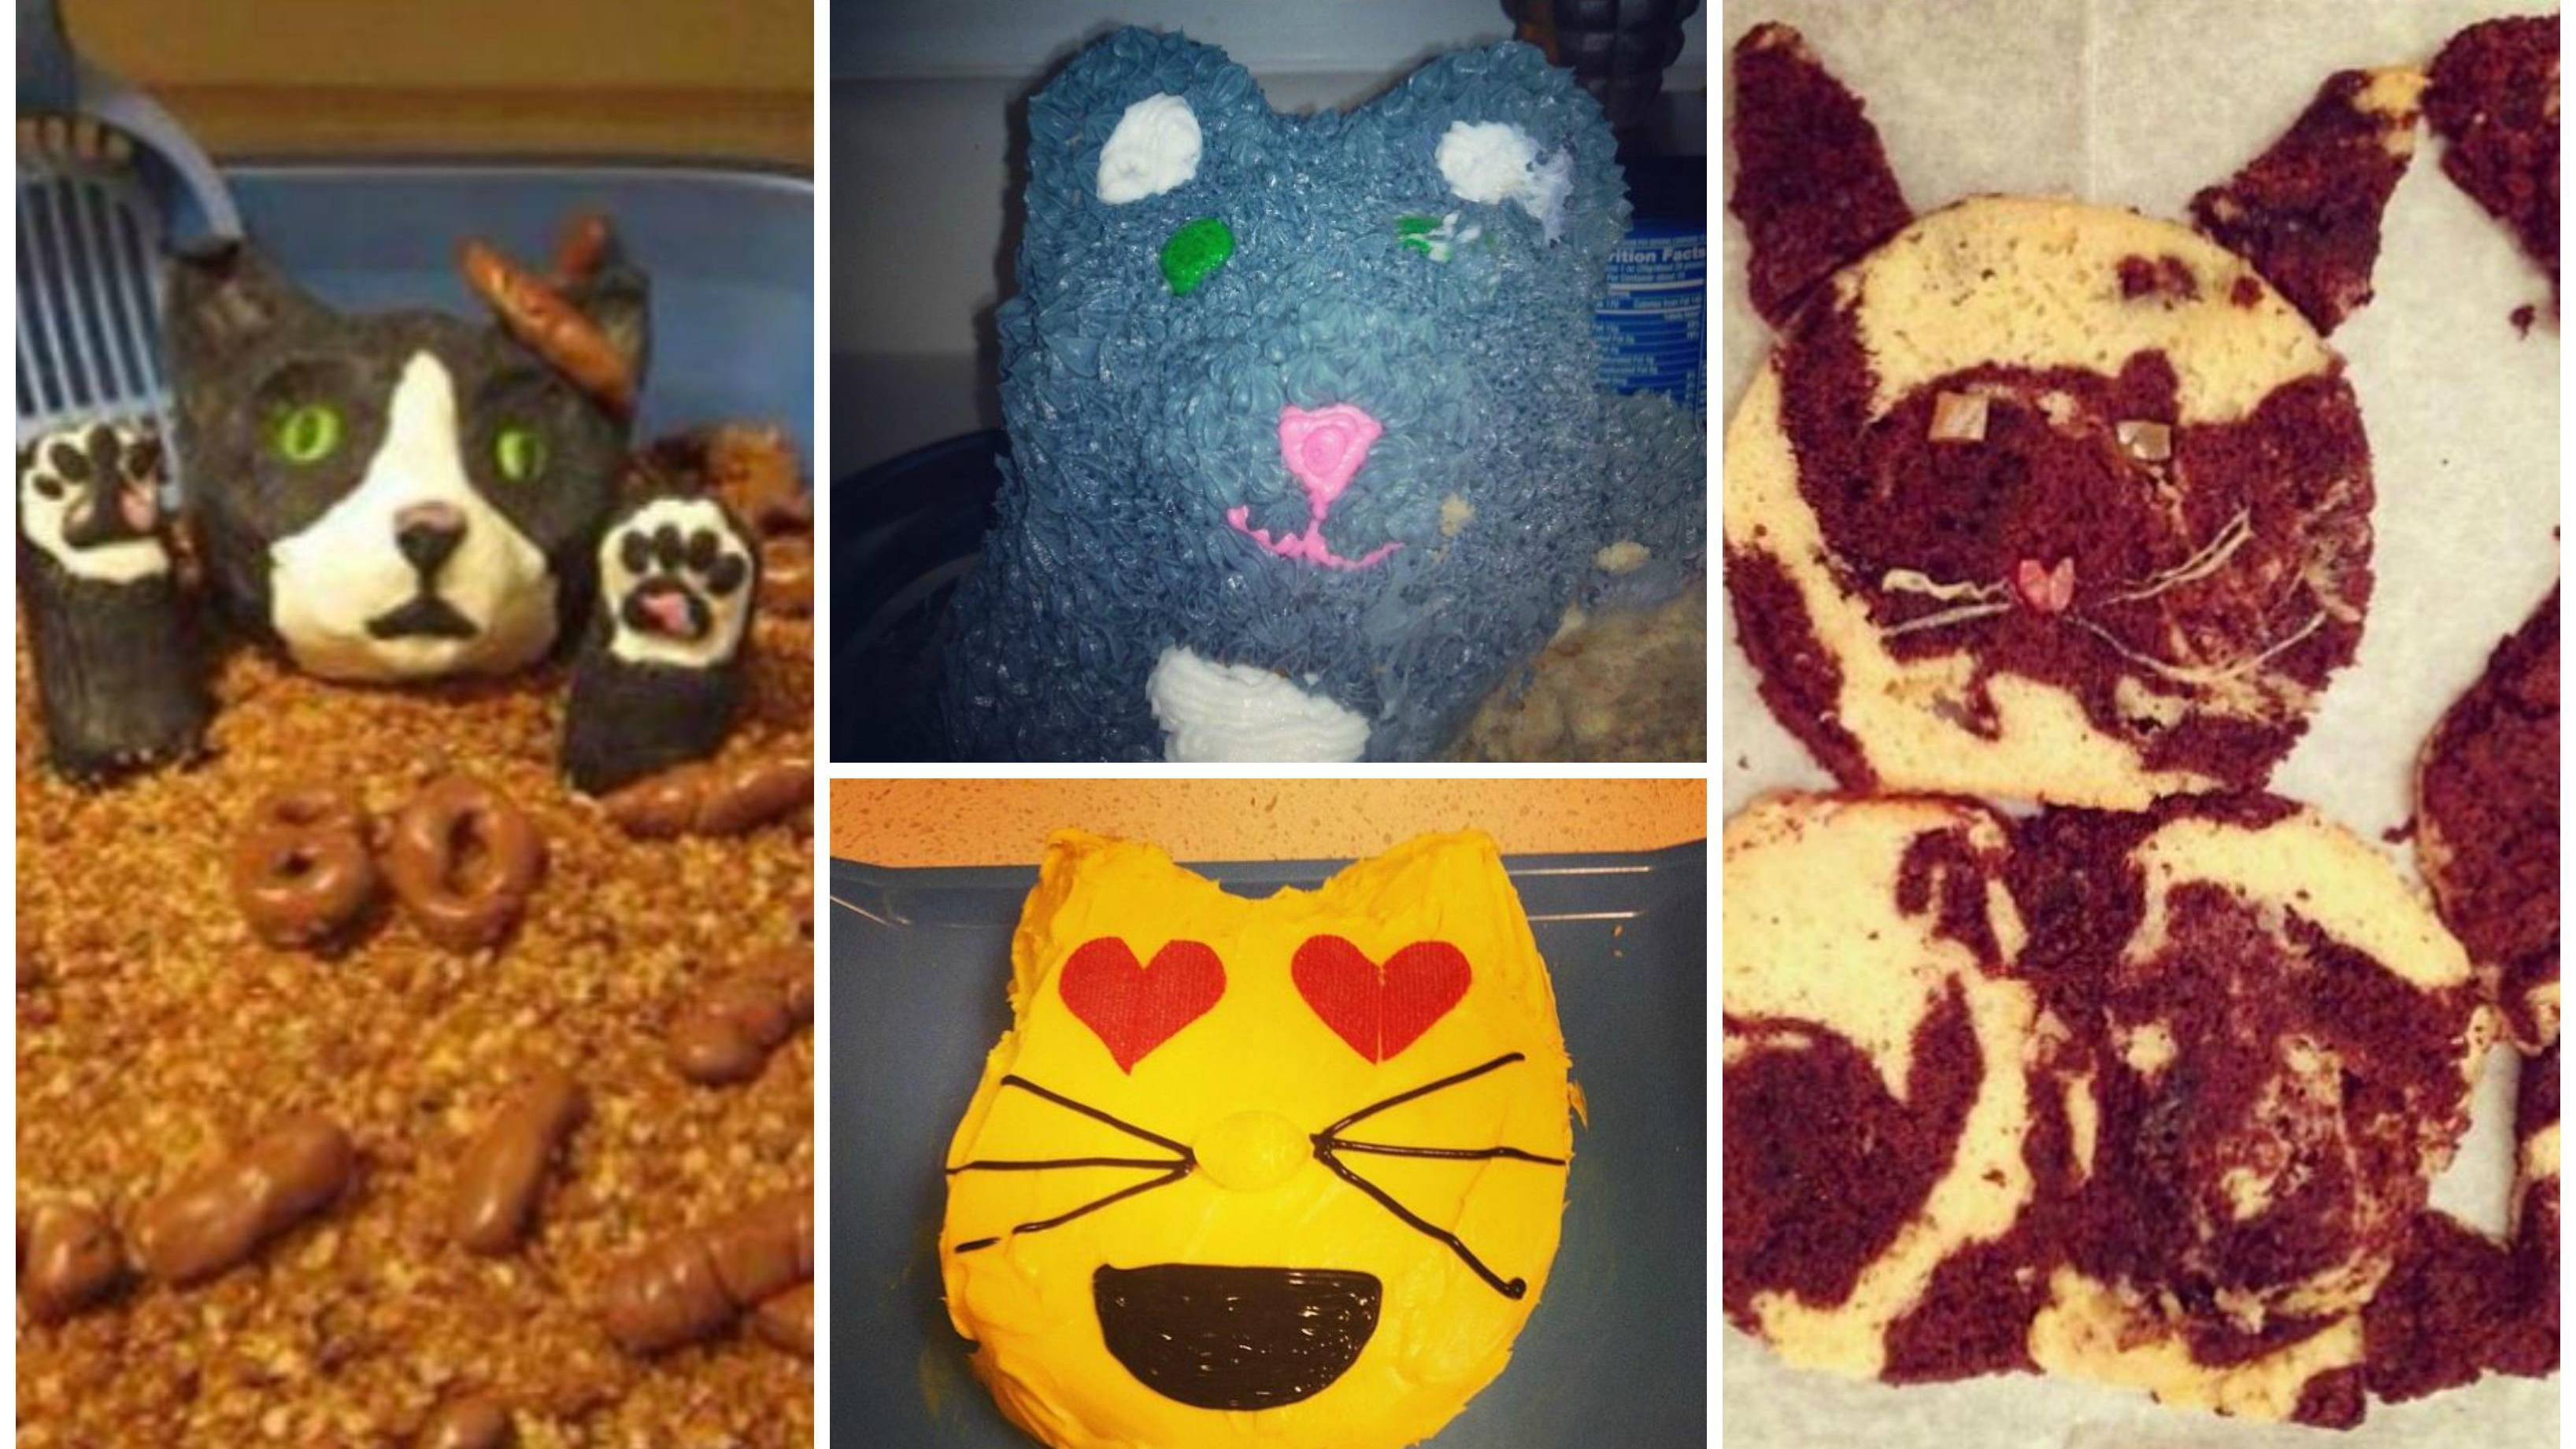 Baking fails: We think these cakes are supposed to look like cats